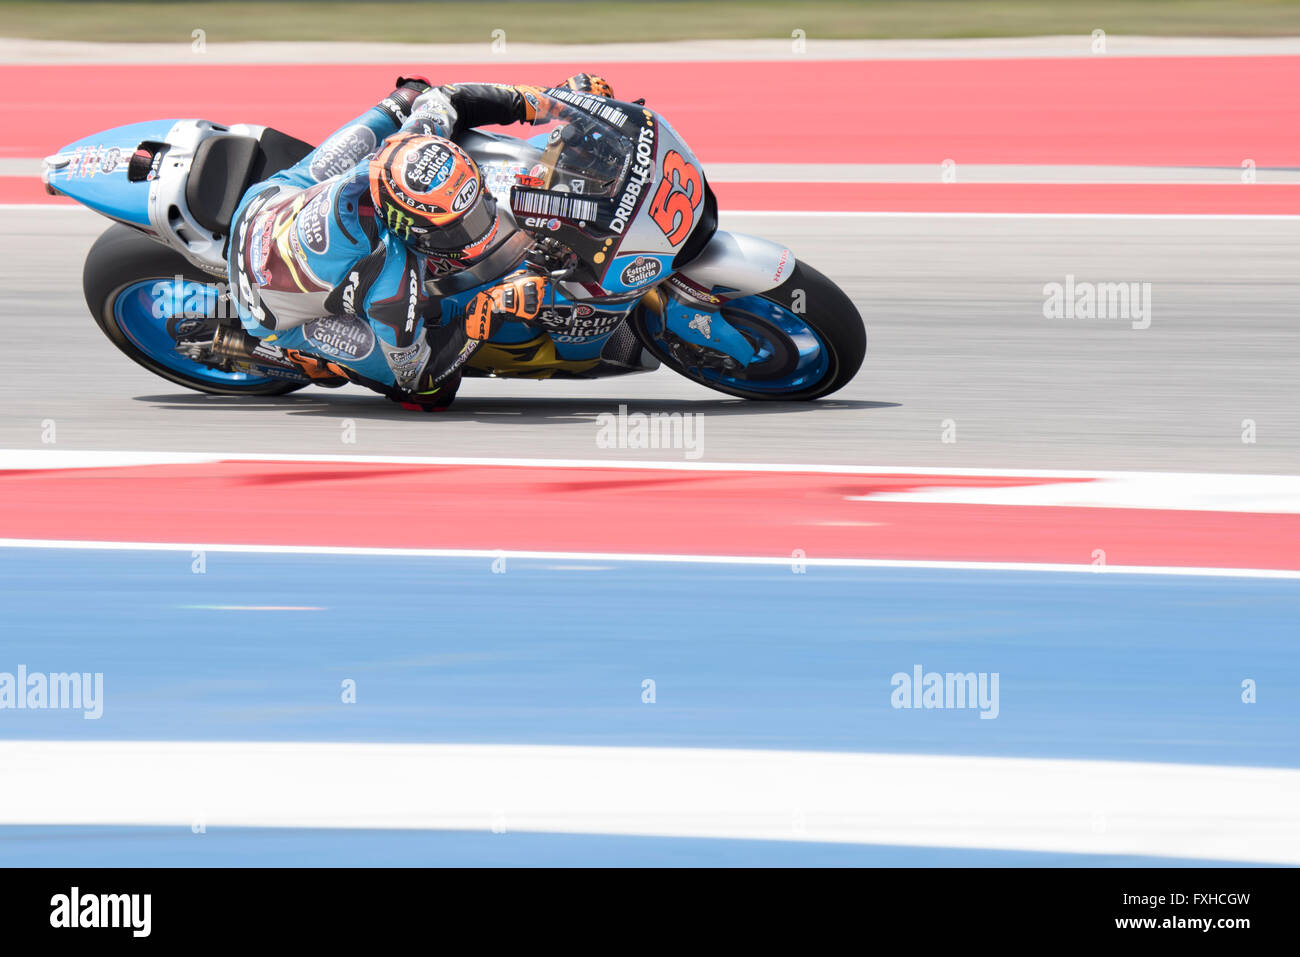 Tito Rabat of Estrella Galiicia seen during the 2016 Red Bull Grand Prix of the Americas at Circuit of the Americas. Stock Photo